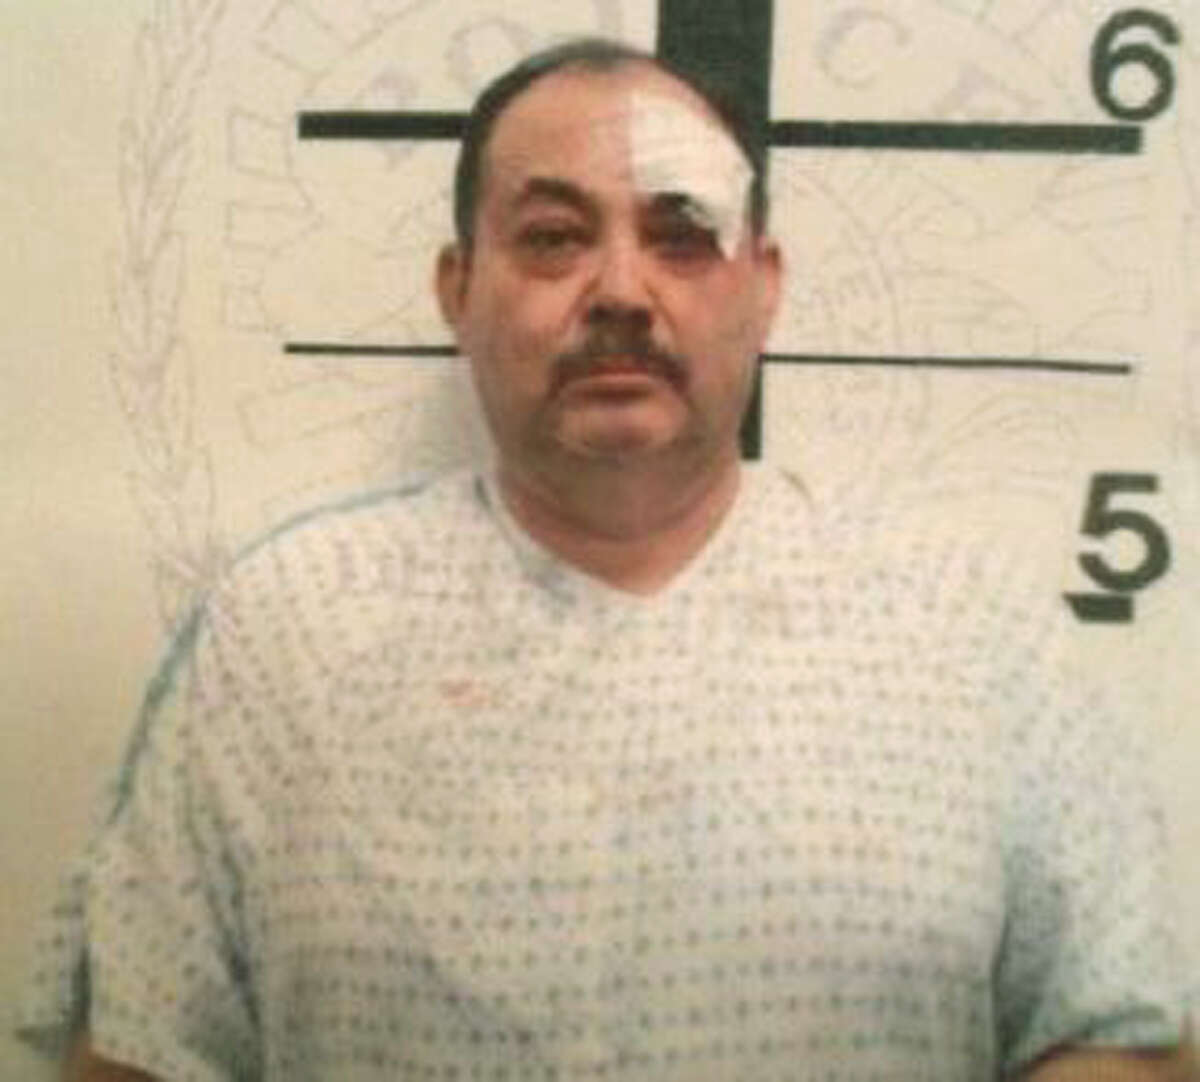 Rodolfo Bainet Heredia, 54, Precinct 2 Commissioner, was arrested in October on charges that he sold his truck to the Zetas drug cartel and smuggled the proceeds into the US.